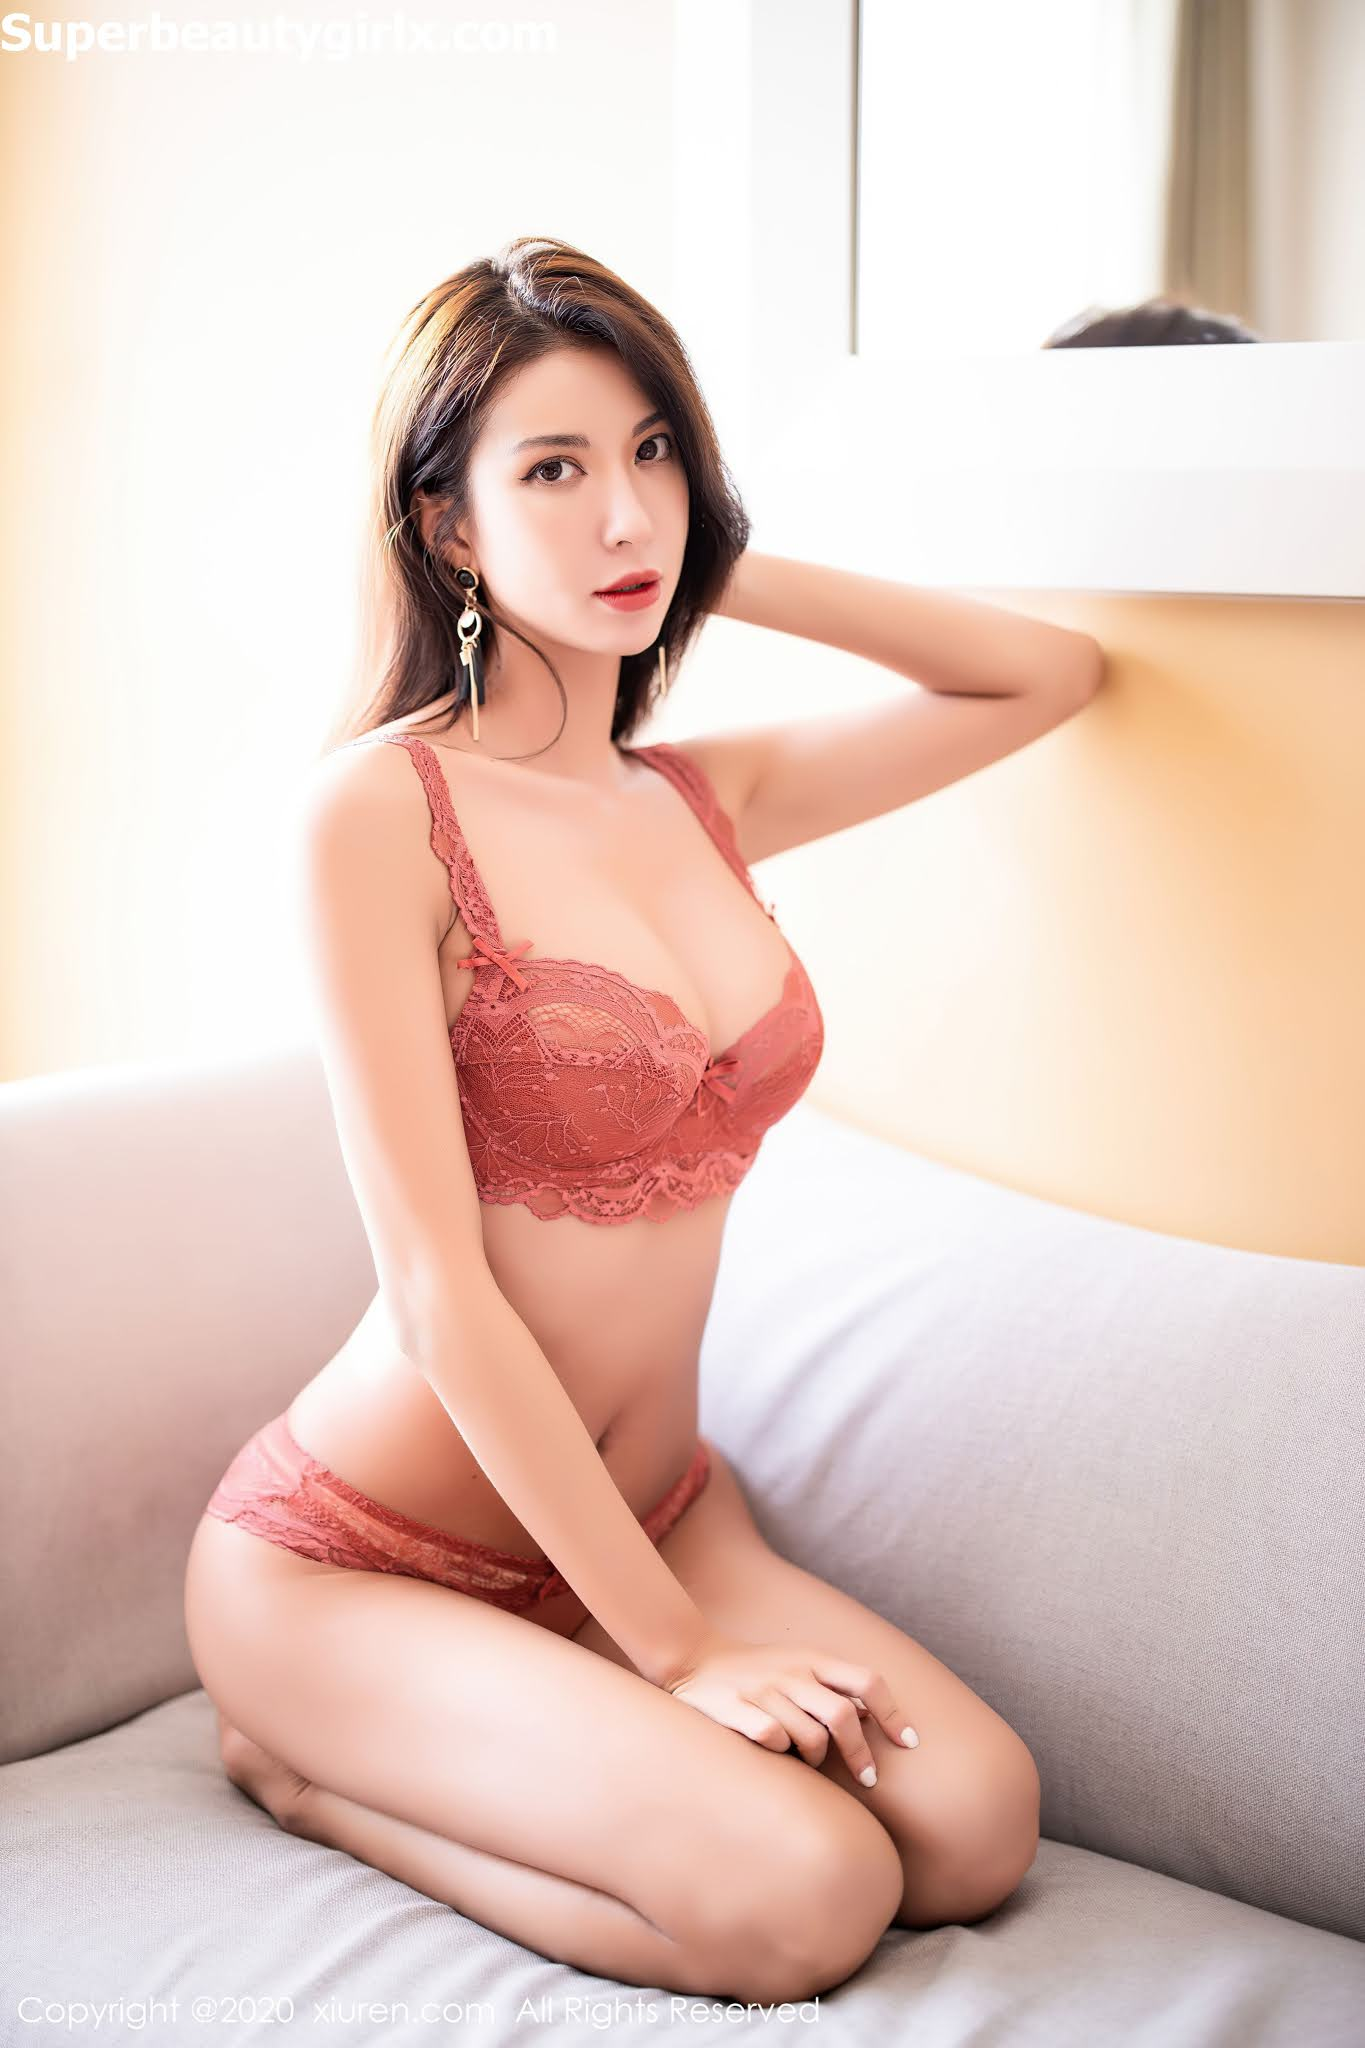 XIUREN-No.2745-carry-Superbeautygirlx.com